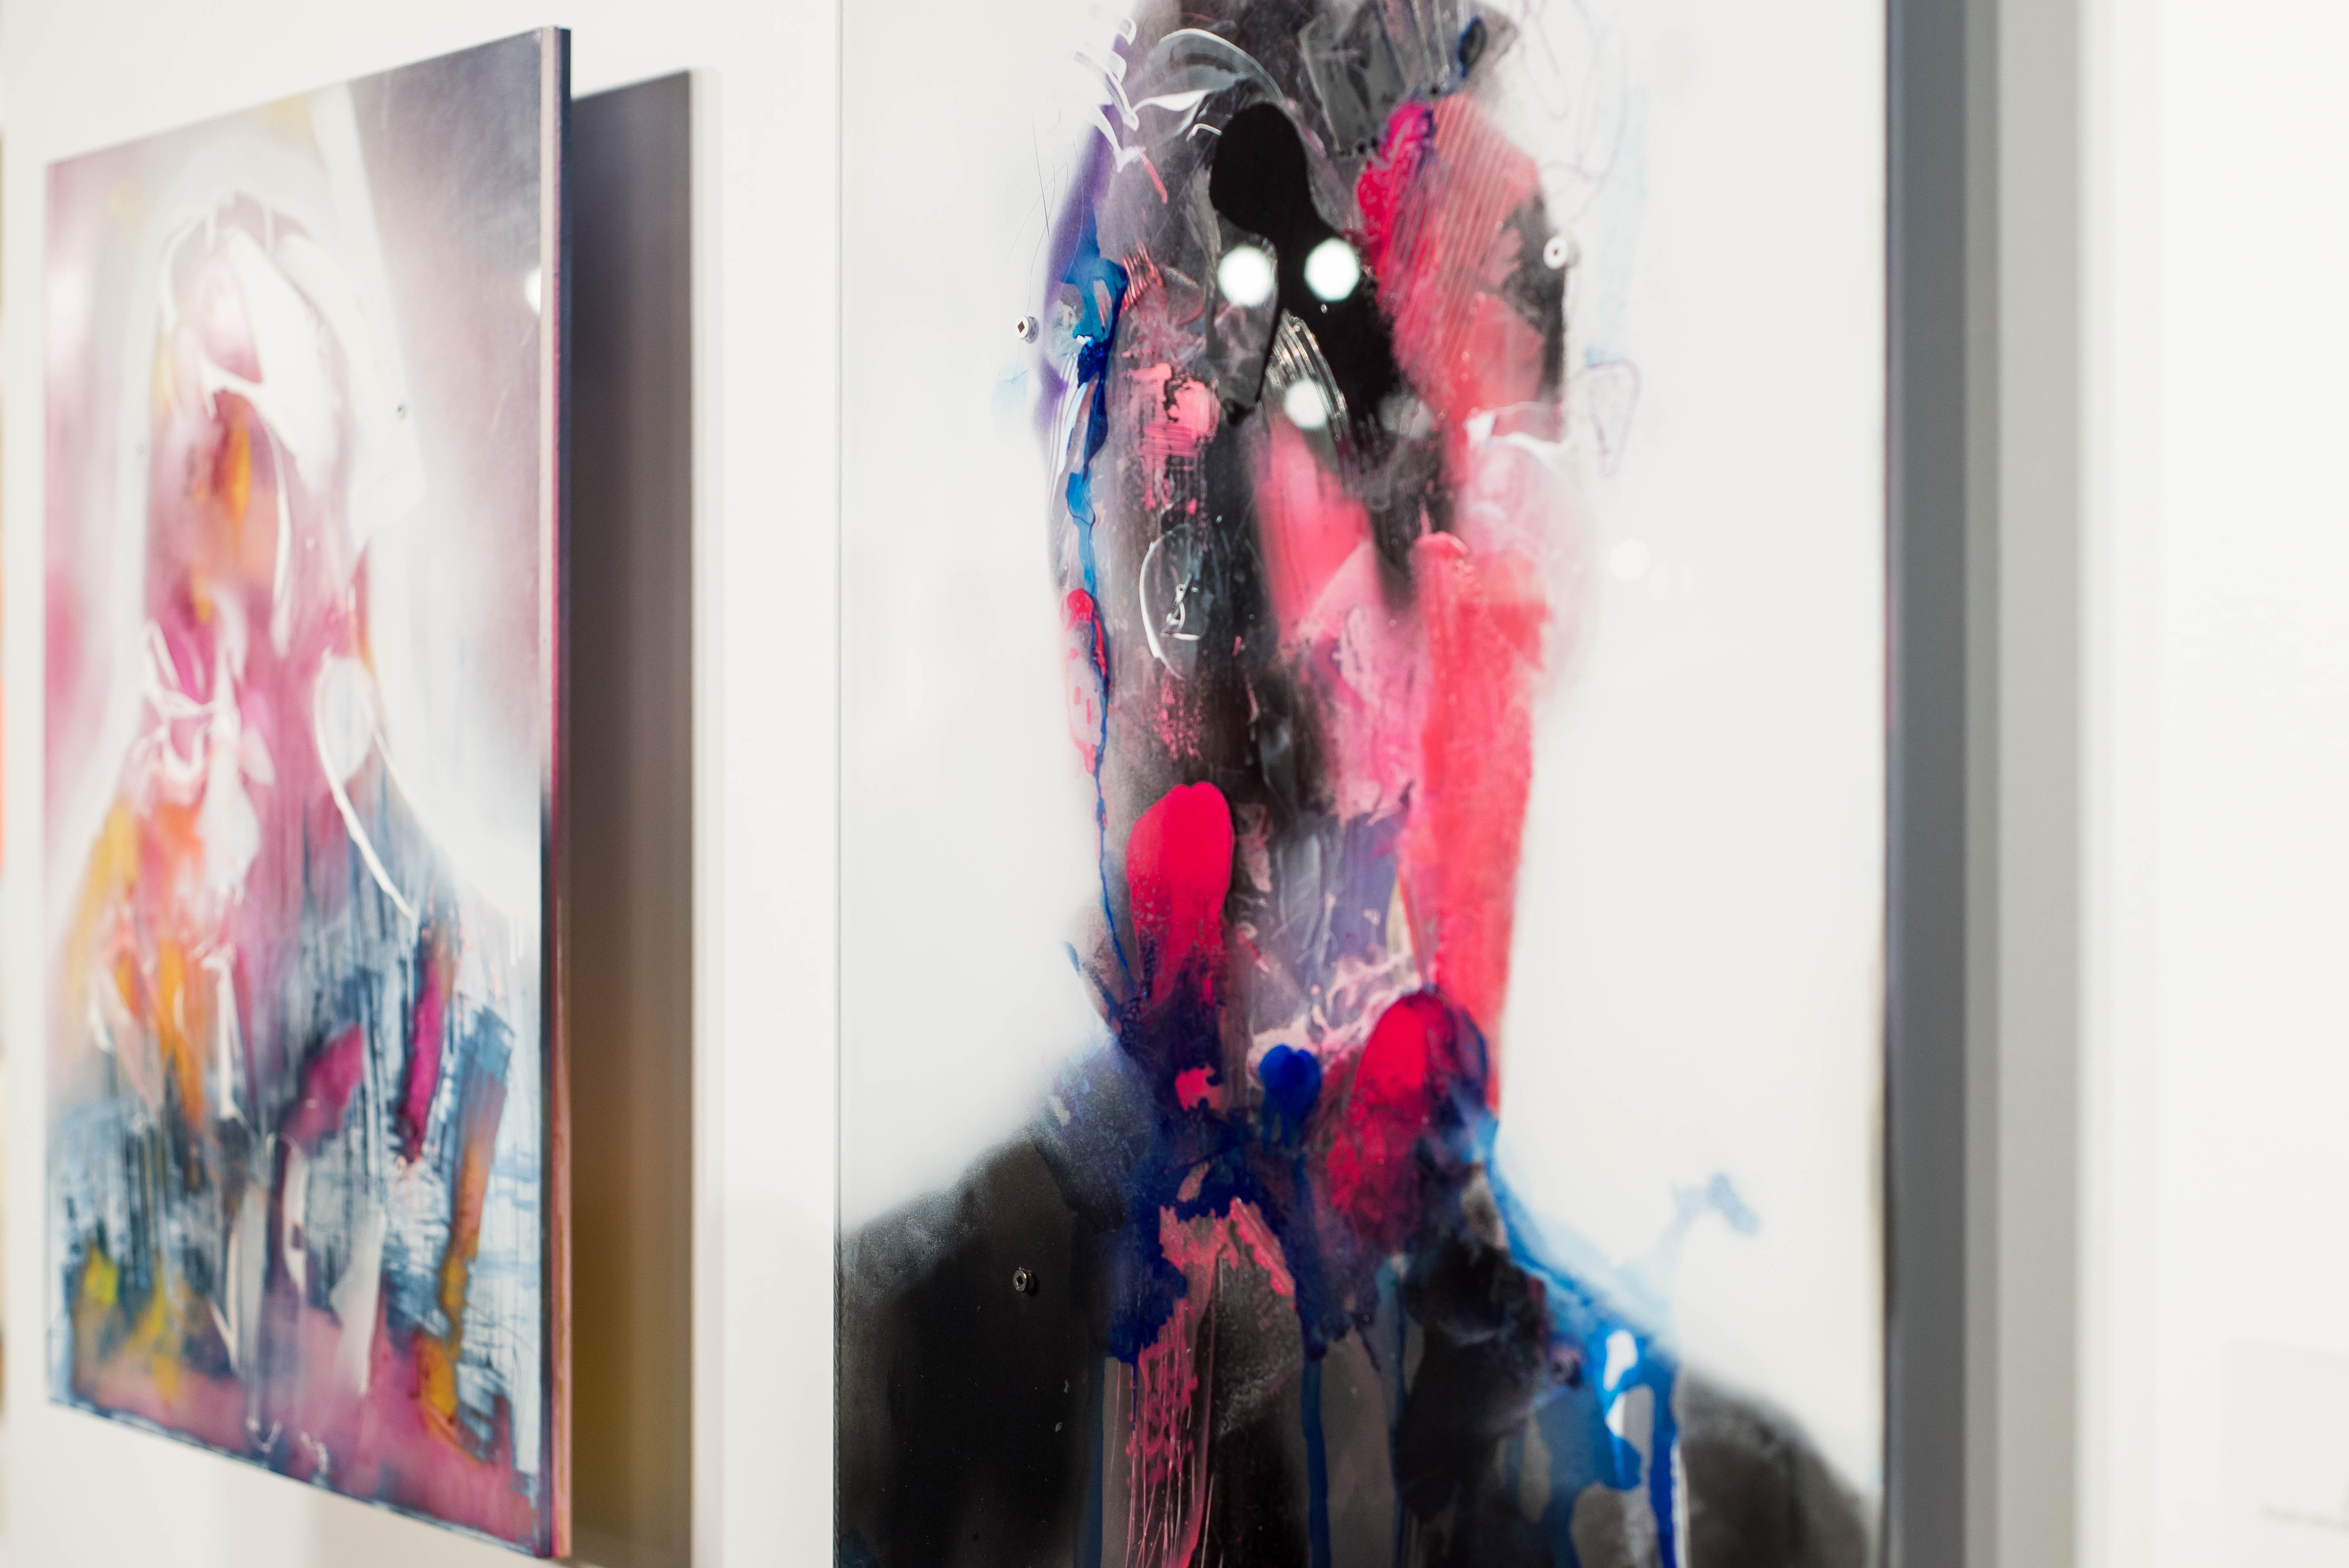 Two paintings of abstract faces